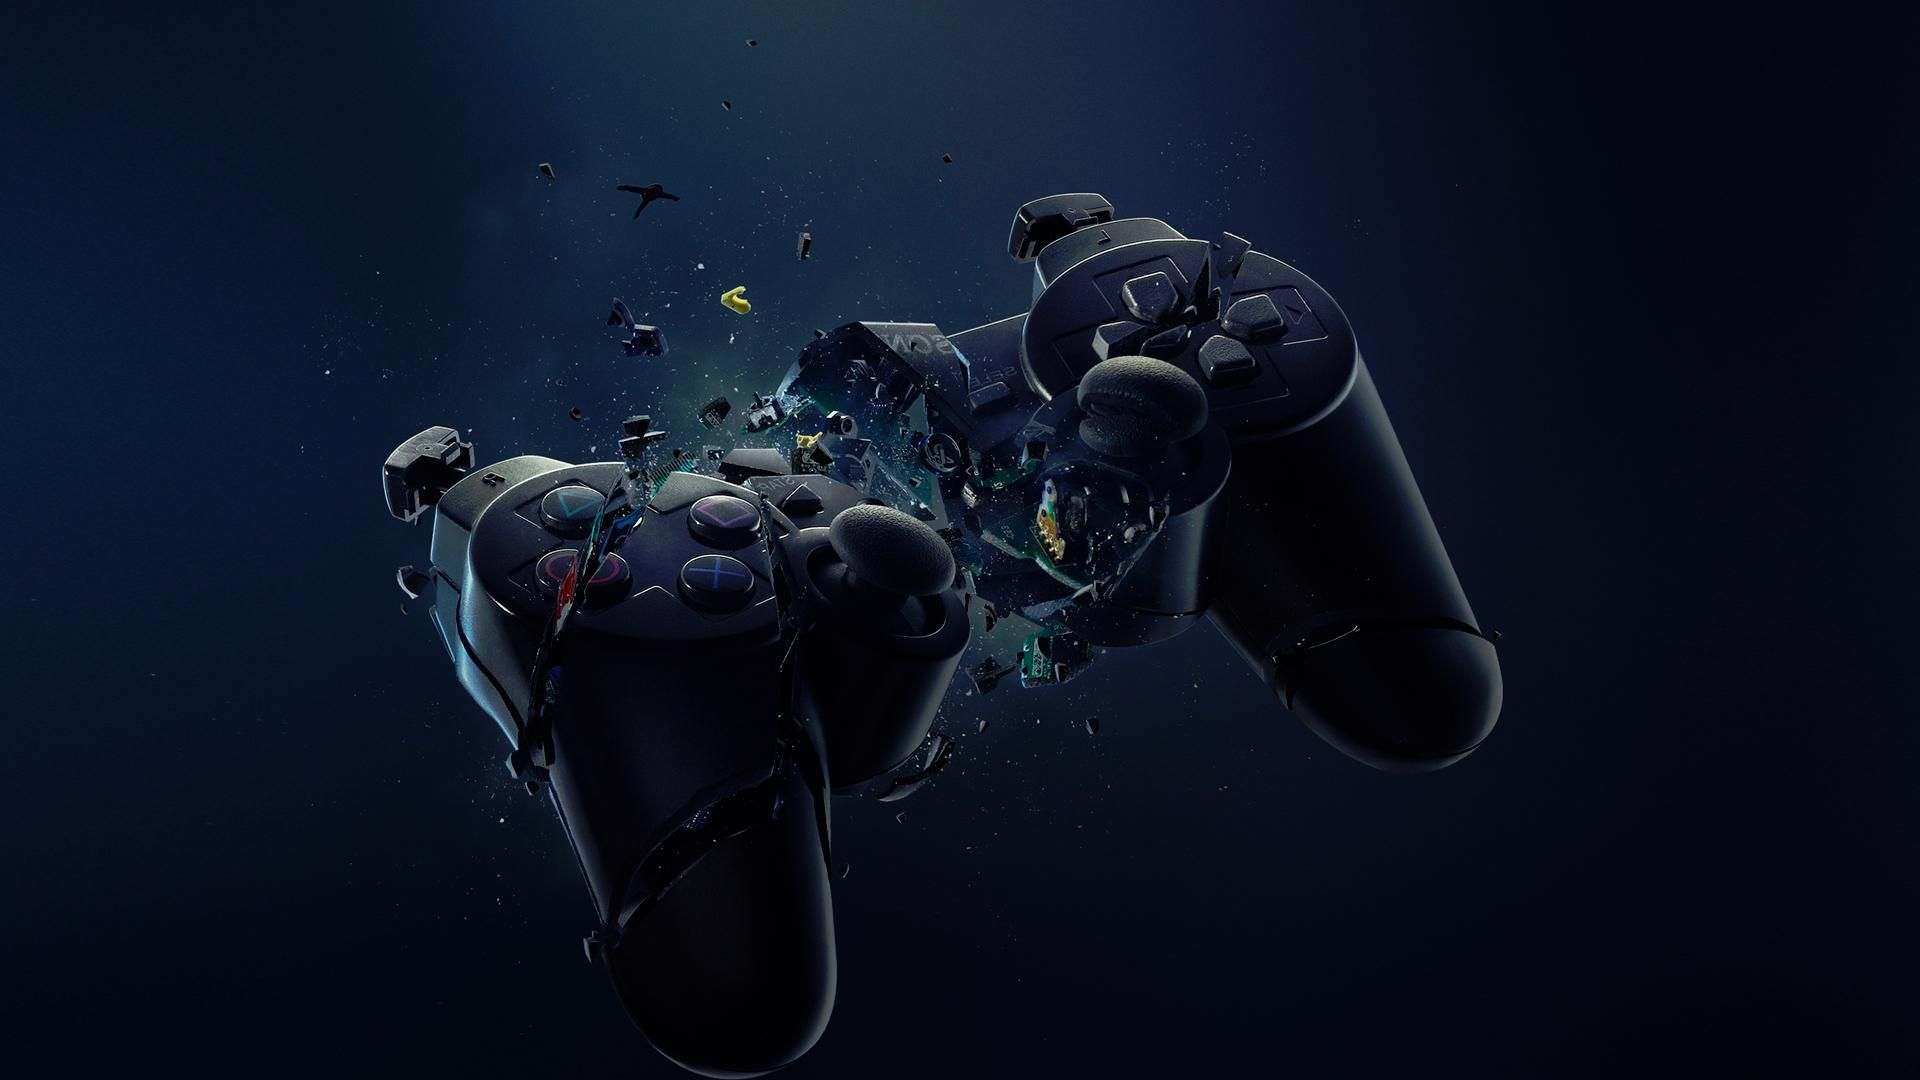 Ps3 Hd Wallpapers Wallpaper Cave Playstation Game